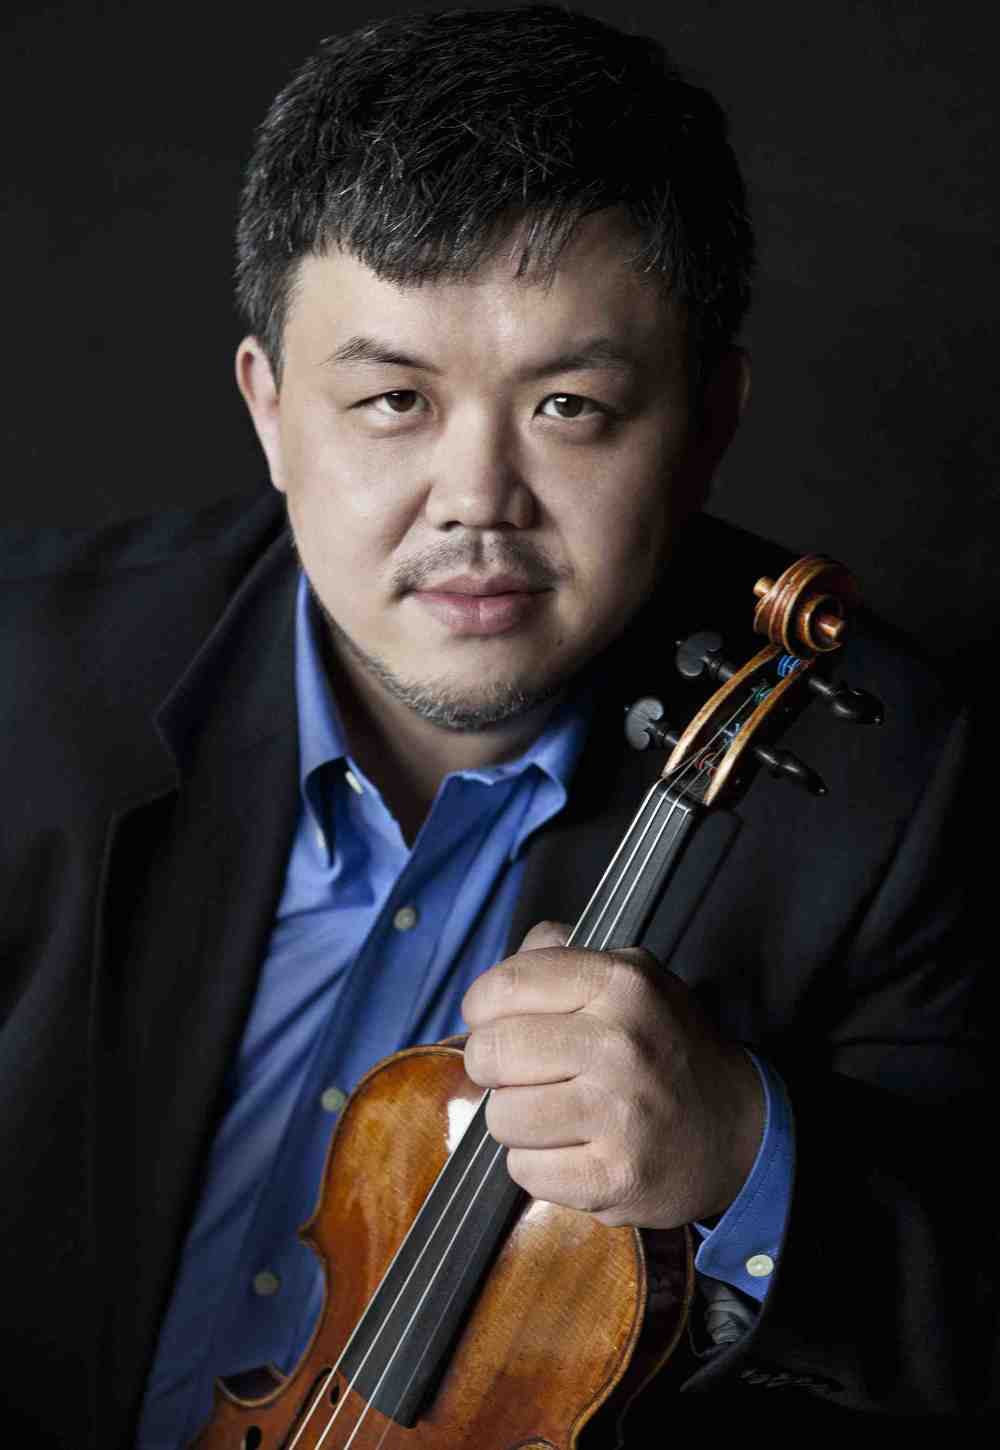 Violinist Xiao-Dong Wang entered the Shanghai Conservatory of Music at the age of ten. Mr. Wang was First Prize winner in the Menuhin International Violin ... - %3Fformat%3D500w